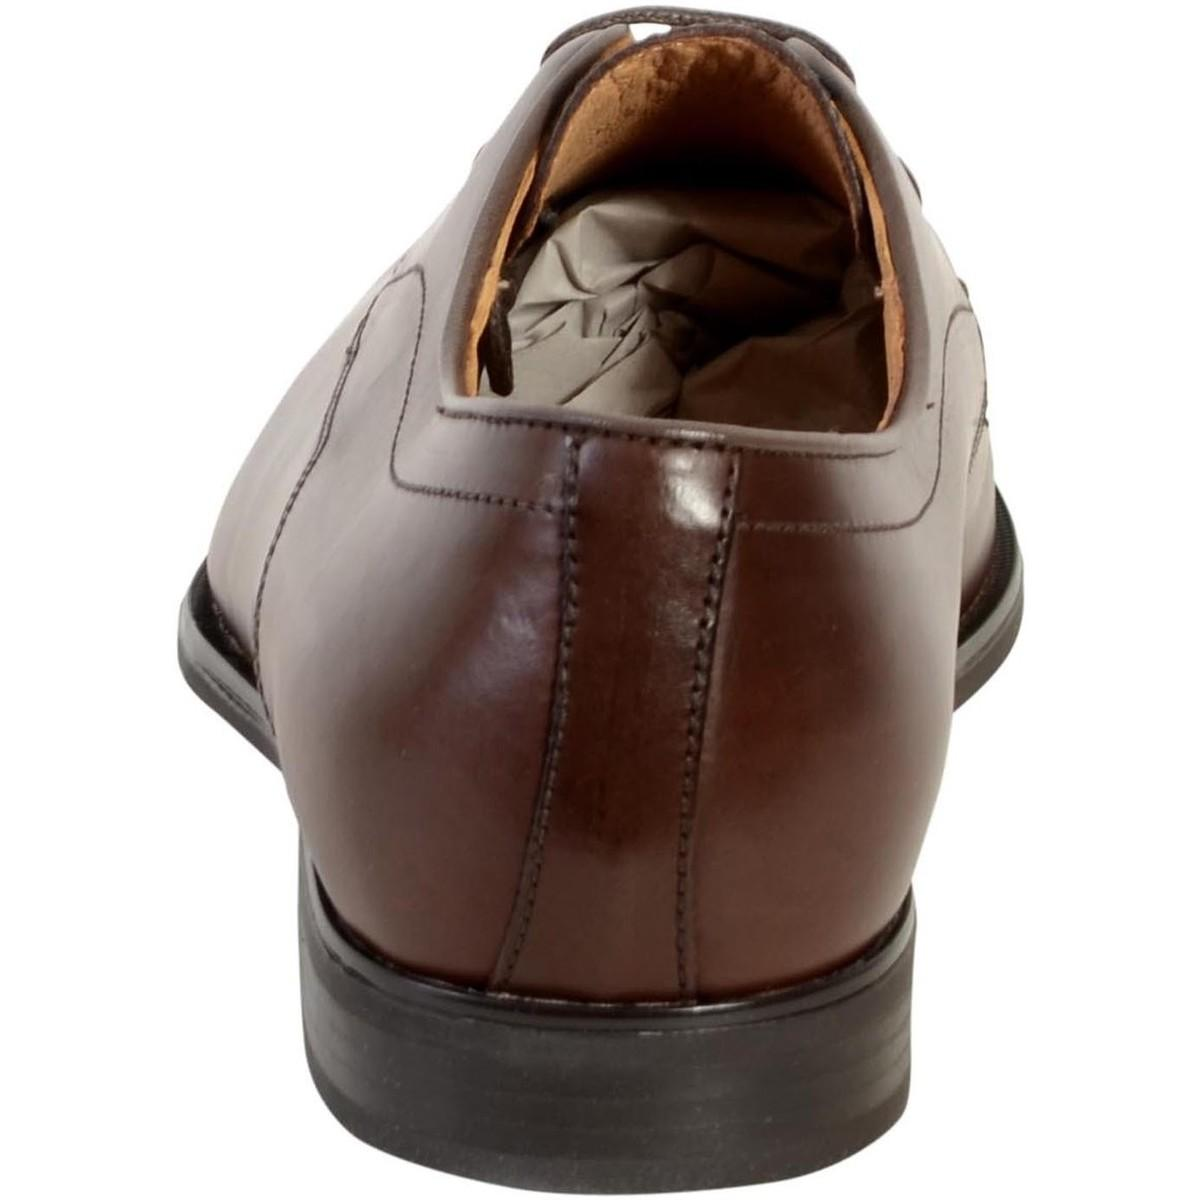 Geox Shoes U New Life A U54p4a 00043 C6027 Ebony Men's Loafers / Casual Shoes In Brown for Men